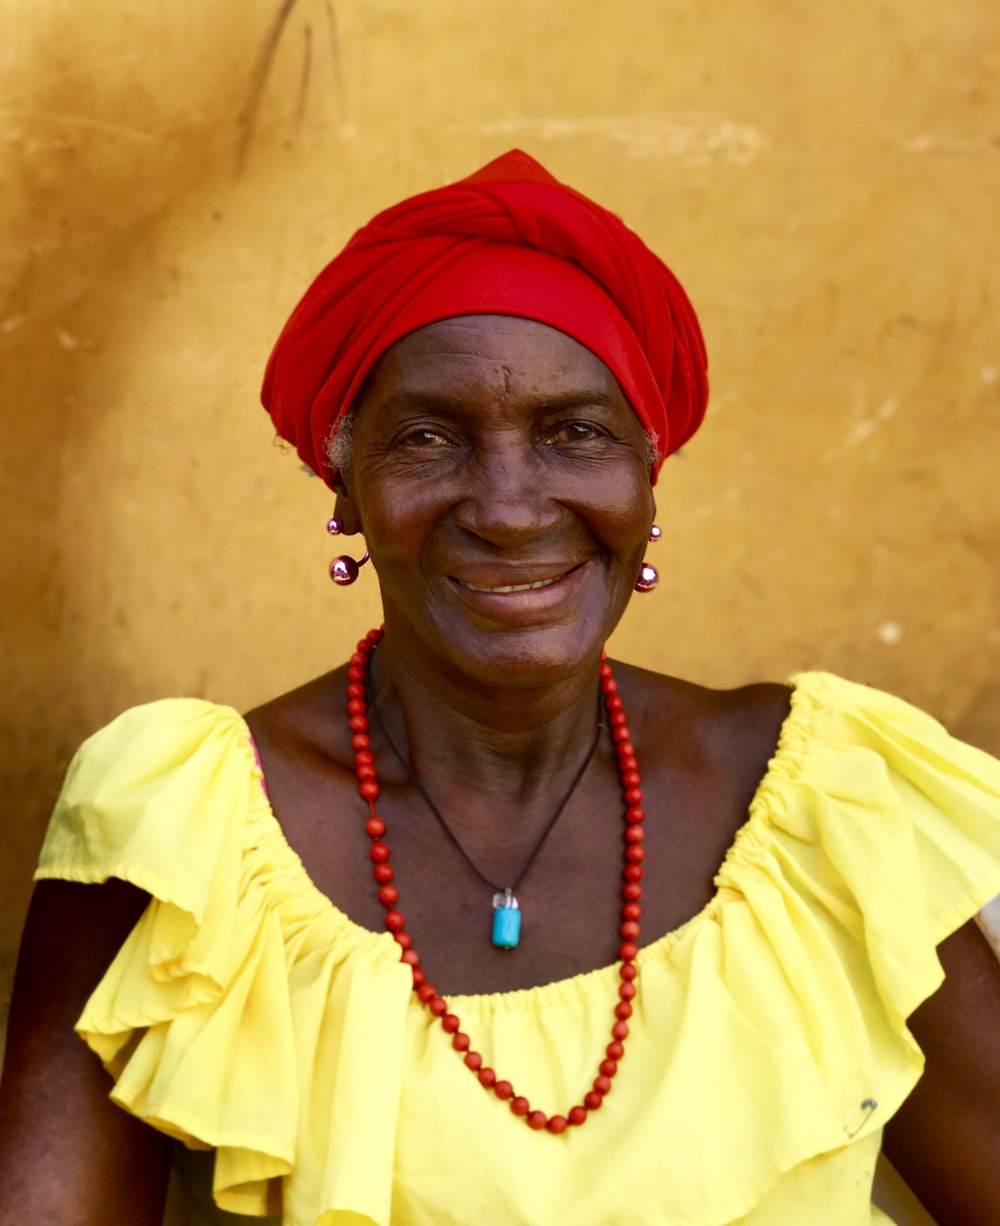 laughing woman wearing beaded necklace and red hat during daytime